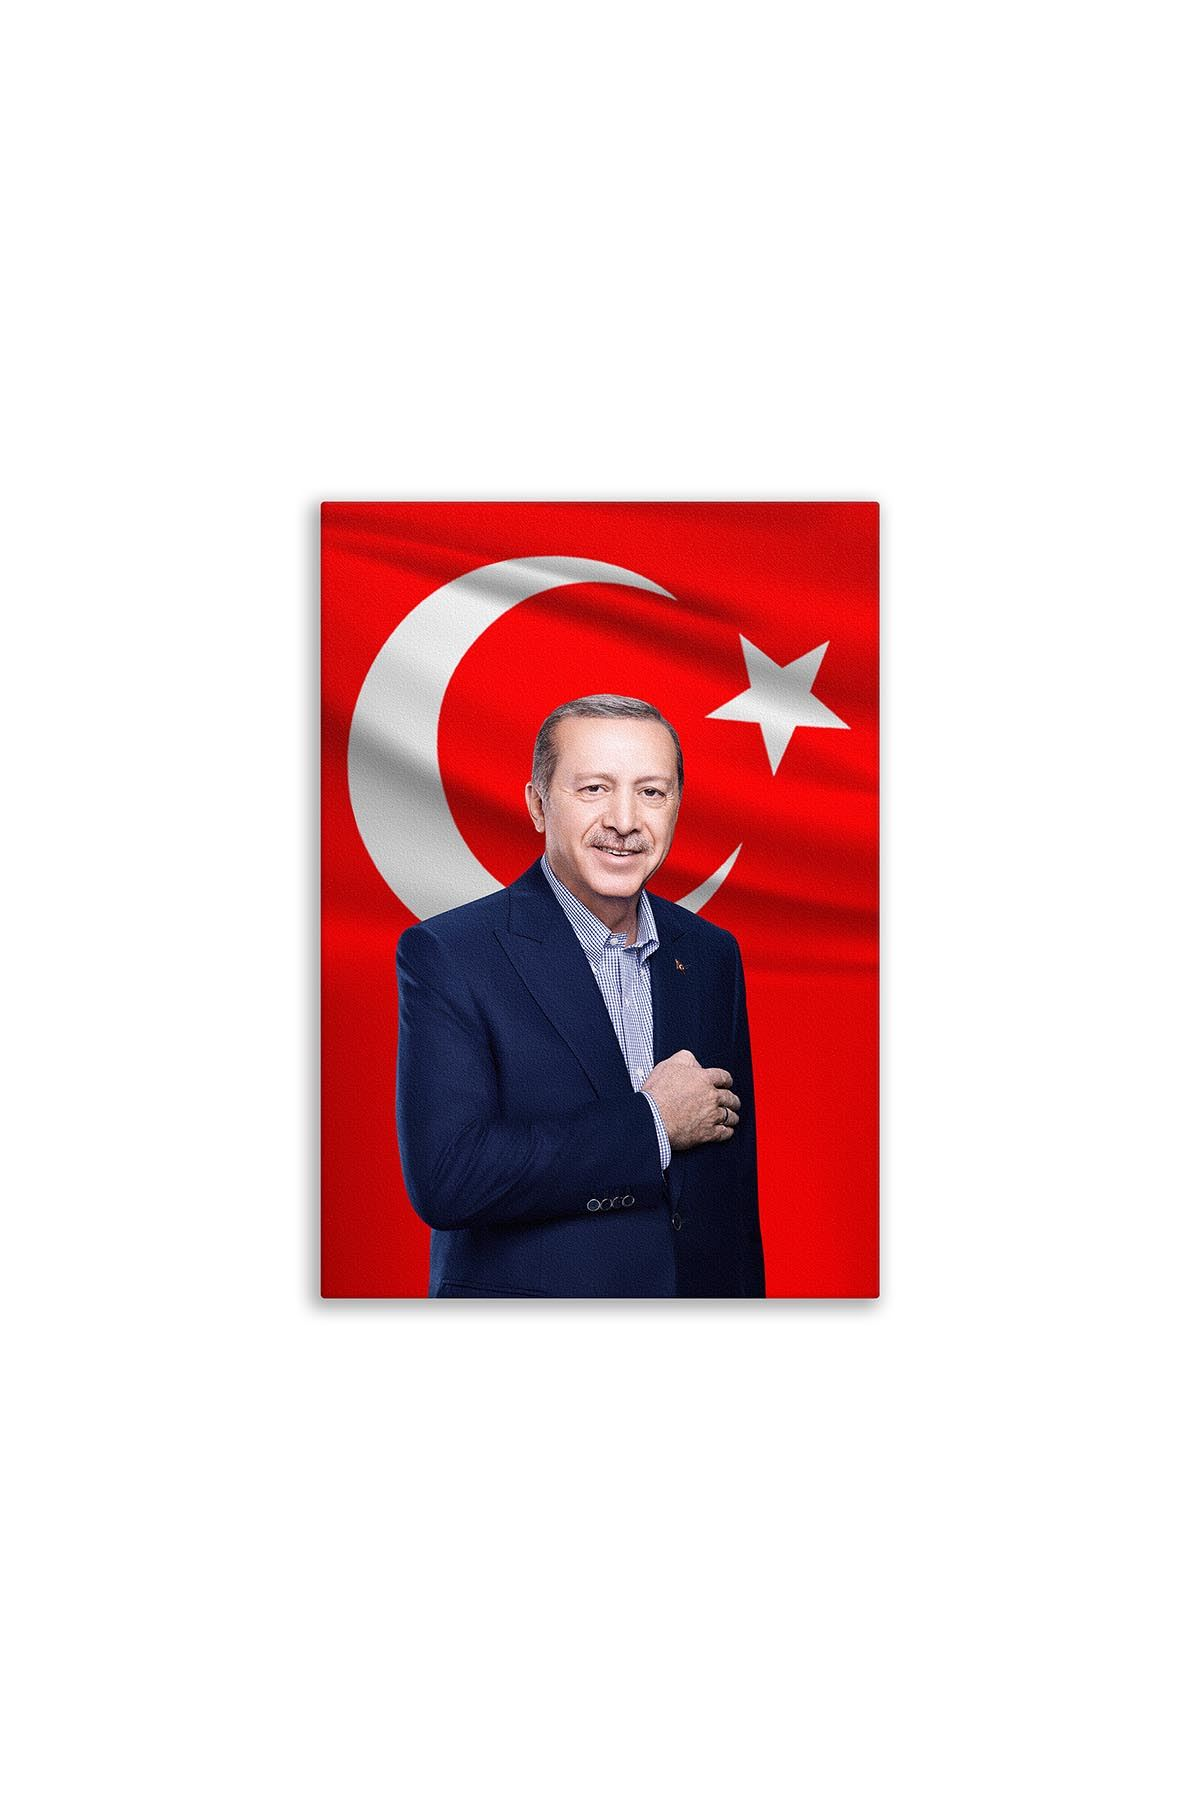 Turkish President Canvas Board | Printed Canvas Board | Customized Canvas Board